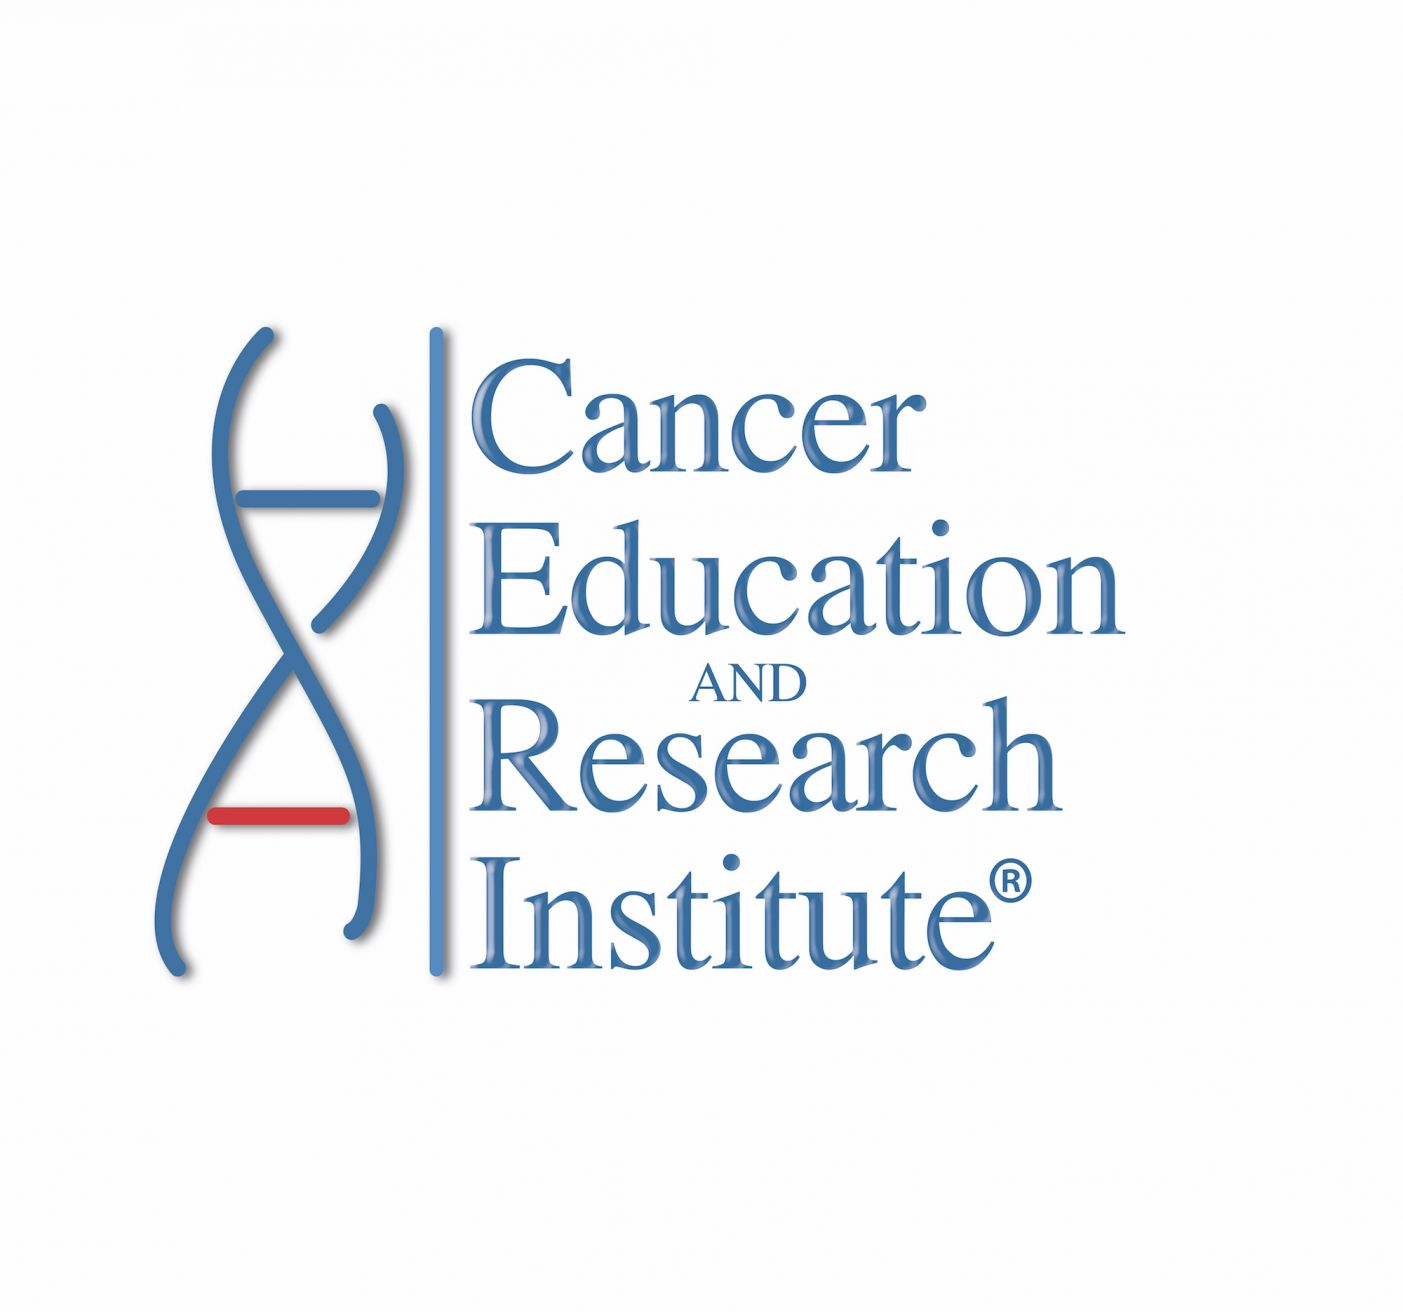 Cancer Education and Research Institute Logo